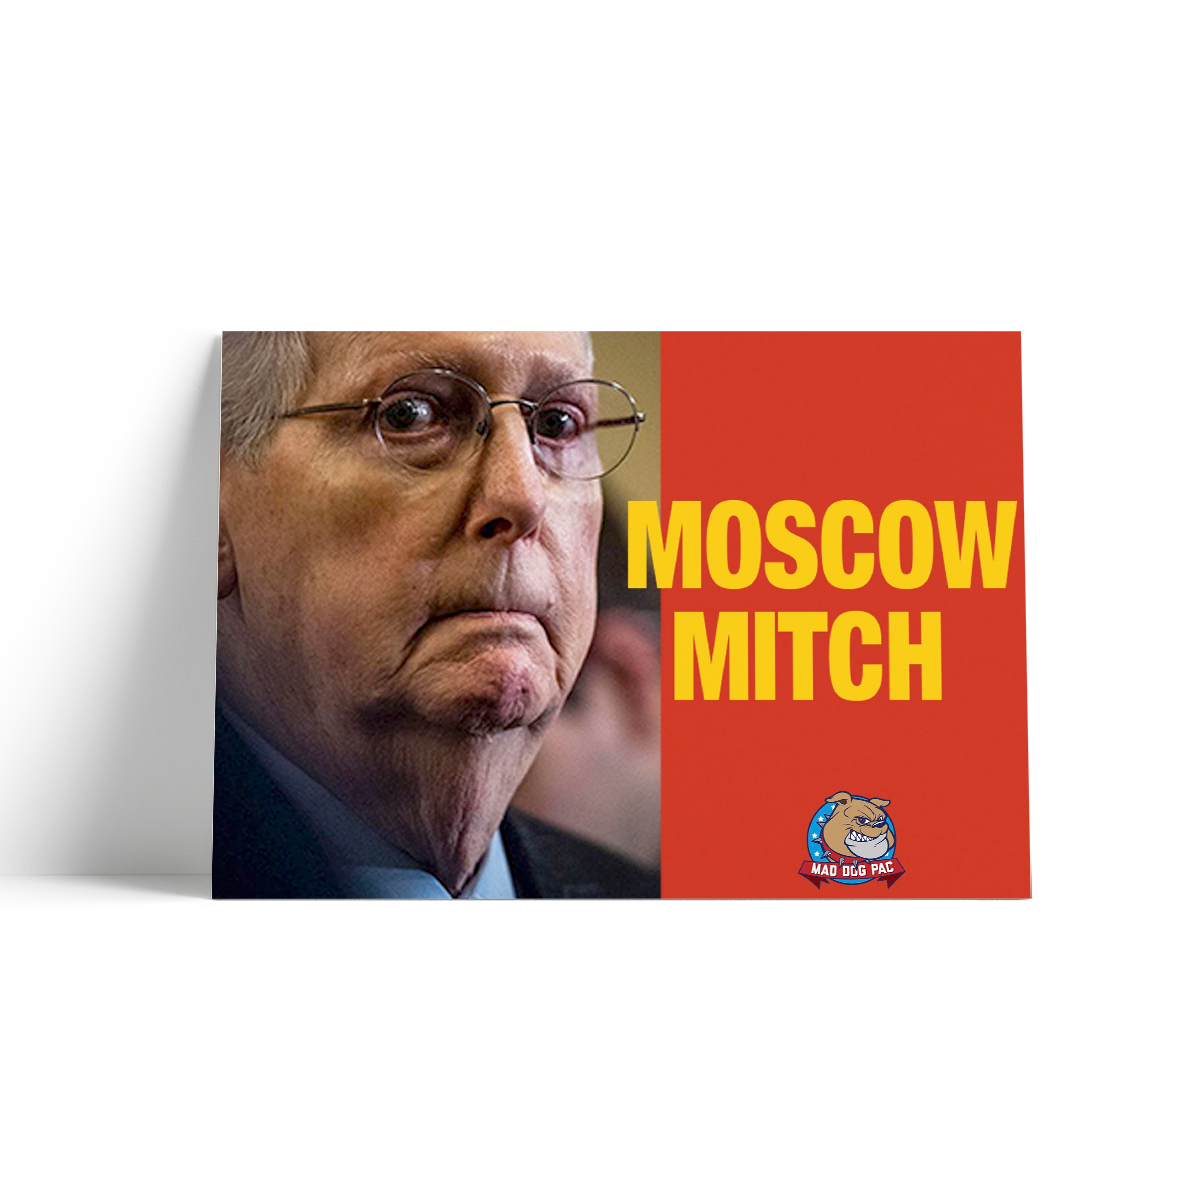 Moscow Mitch Poster - Free Download!